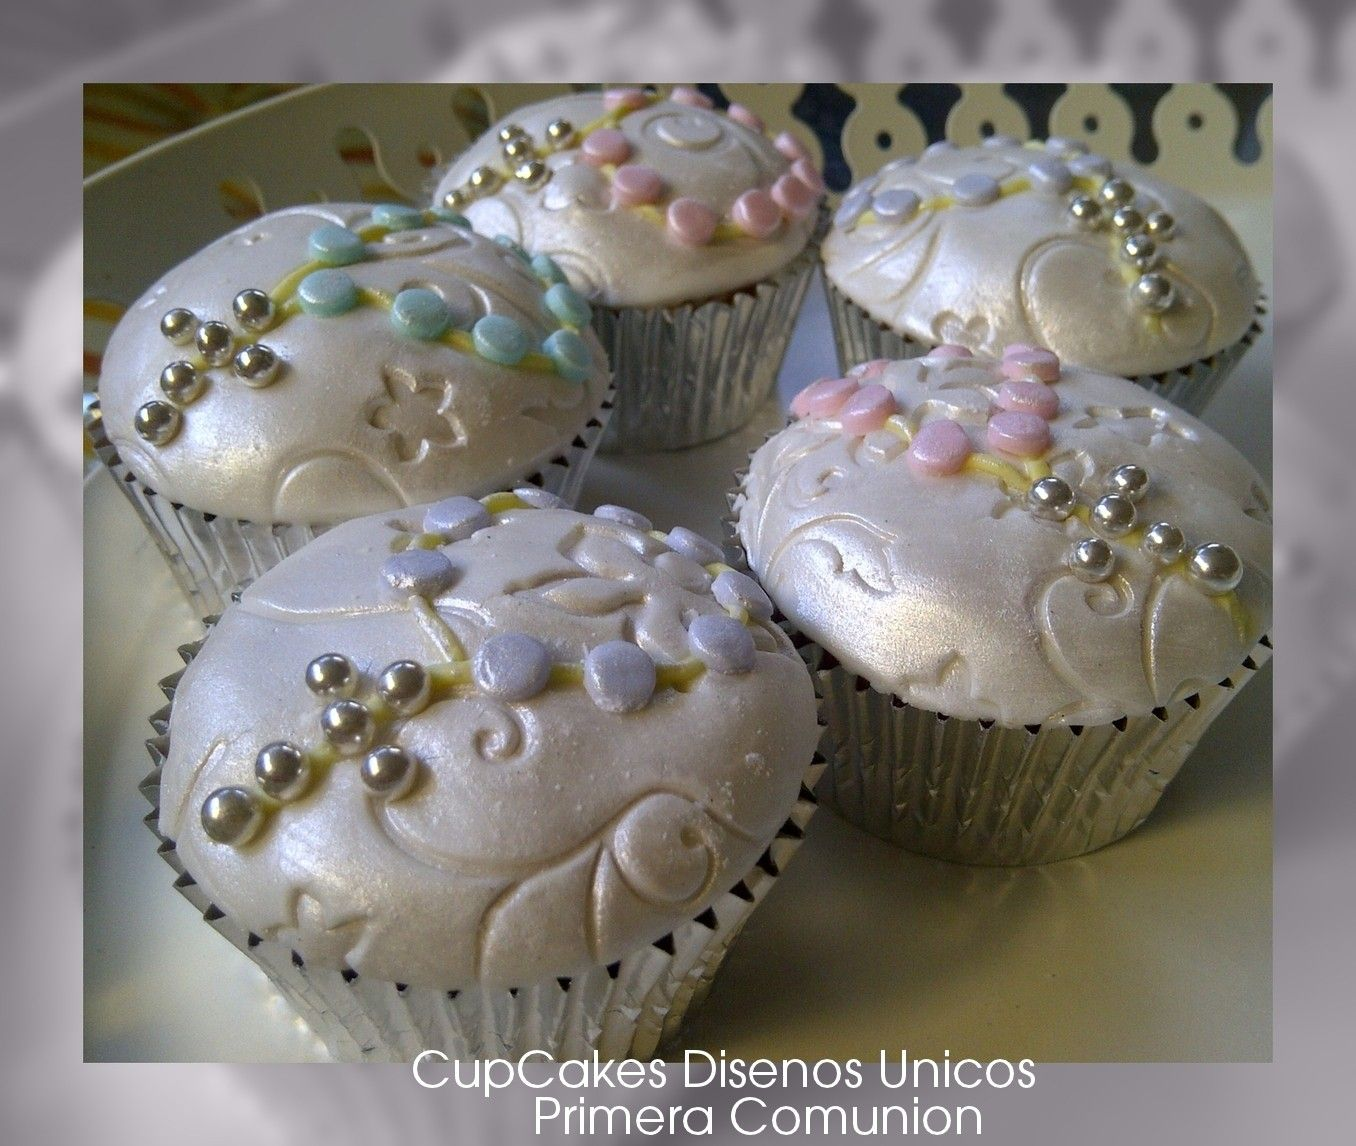 Cupcake Decorating Ideas For First Communion : First Communion Cupcakes ~! My Style / Mis Trabajos / My ...